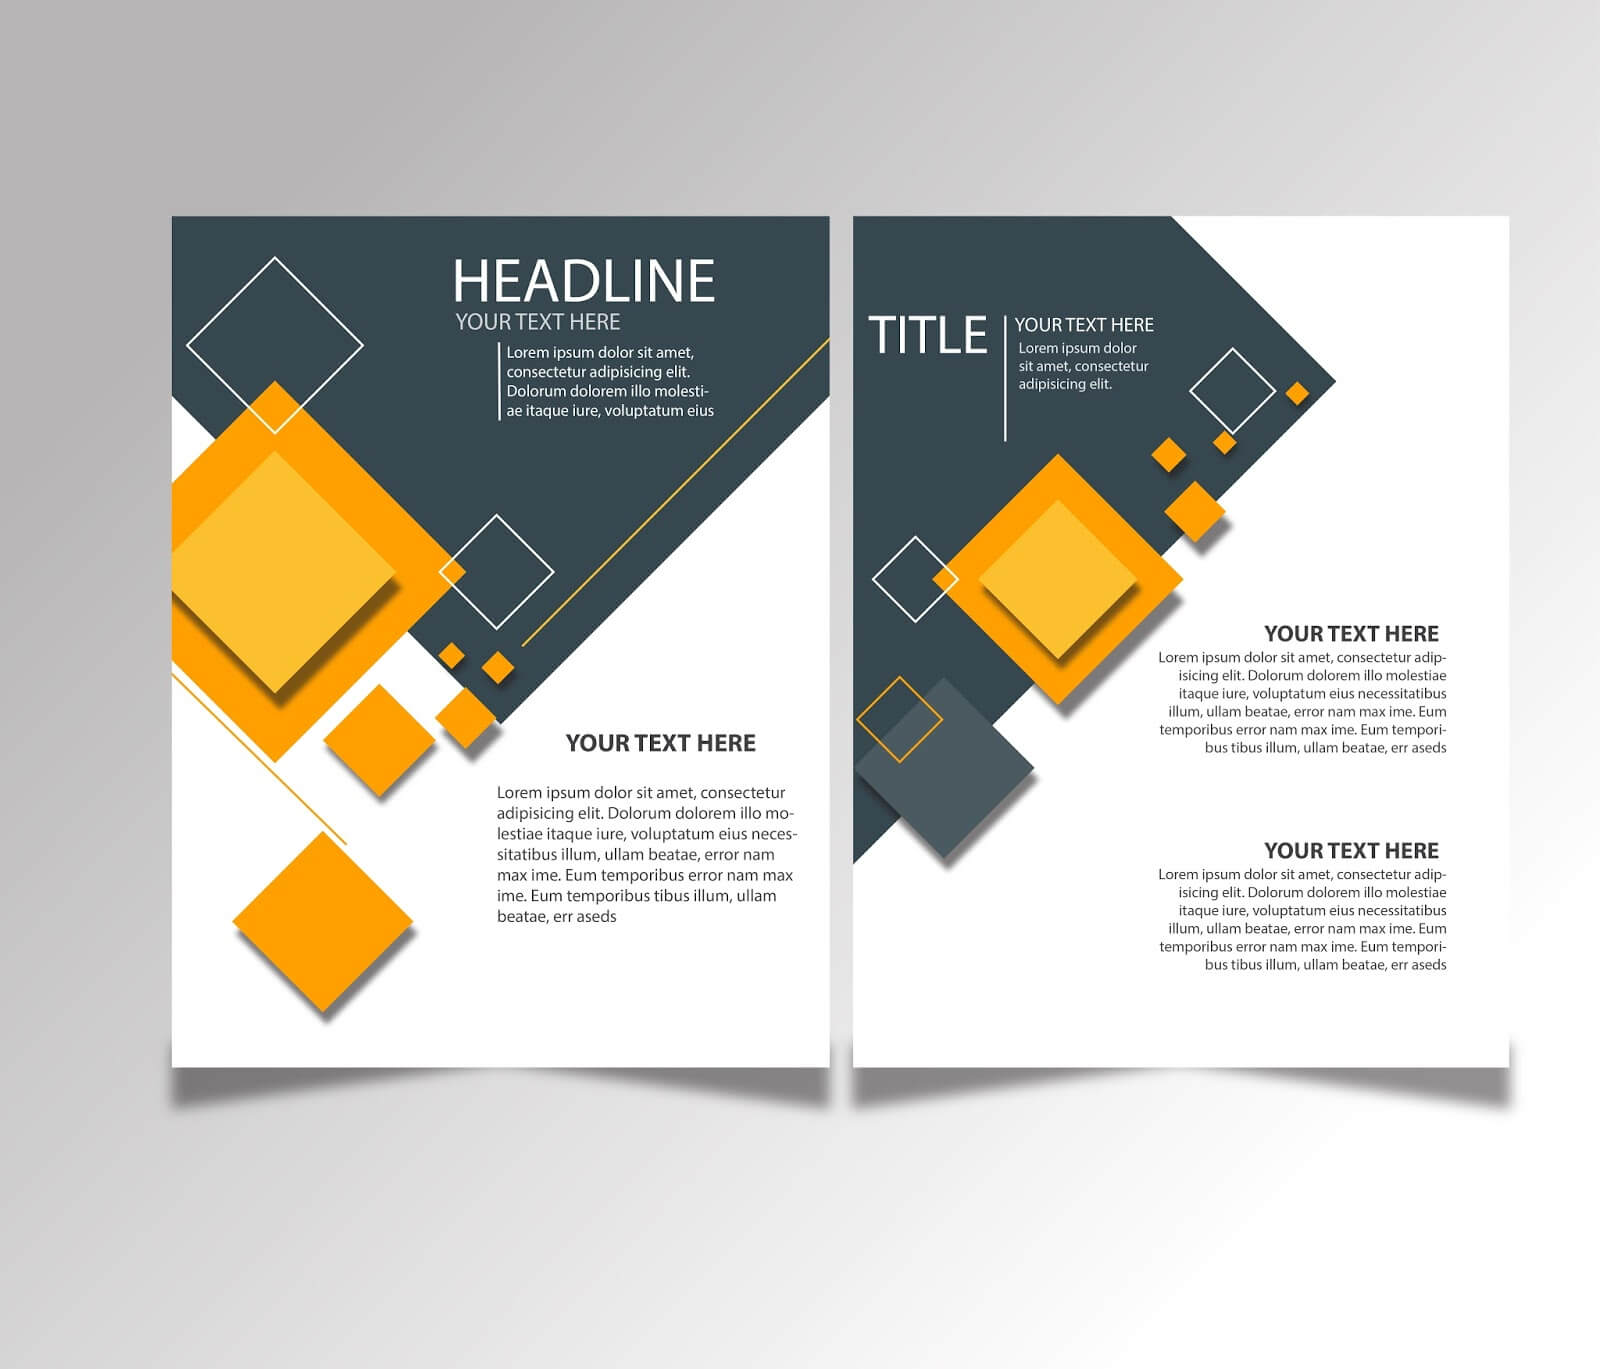 Free Download Brochure Design Templates Ai Files - Ideosprocess Pertaining To Adobe Illustrator Brochure Templates Free Download